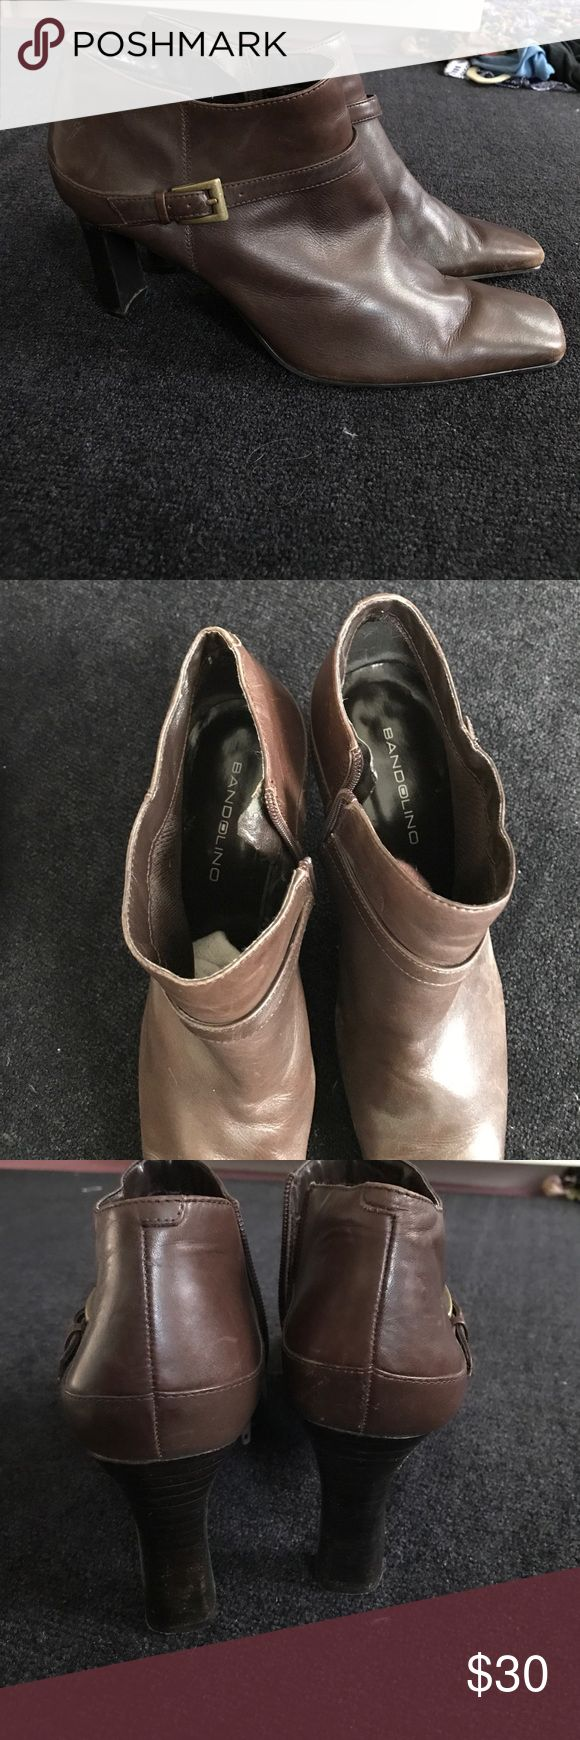 Bandolino Dark Brown leather buckled ankle boots Great condition dark brown leather ankle boots with a gold buckle accent on the outside, zipper on the inside. Square toed. Bandolino Shoes Heeled Boots